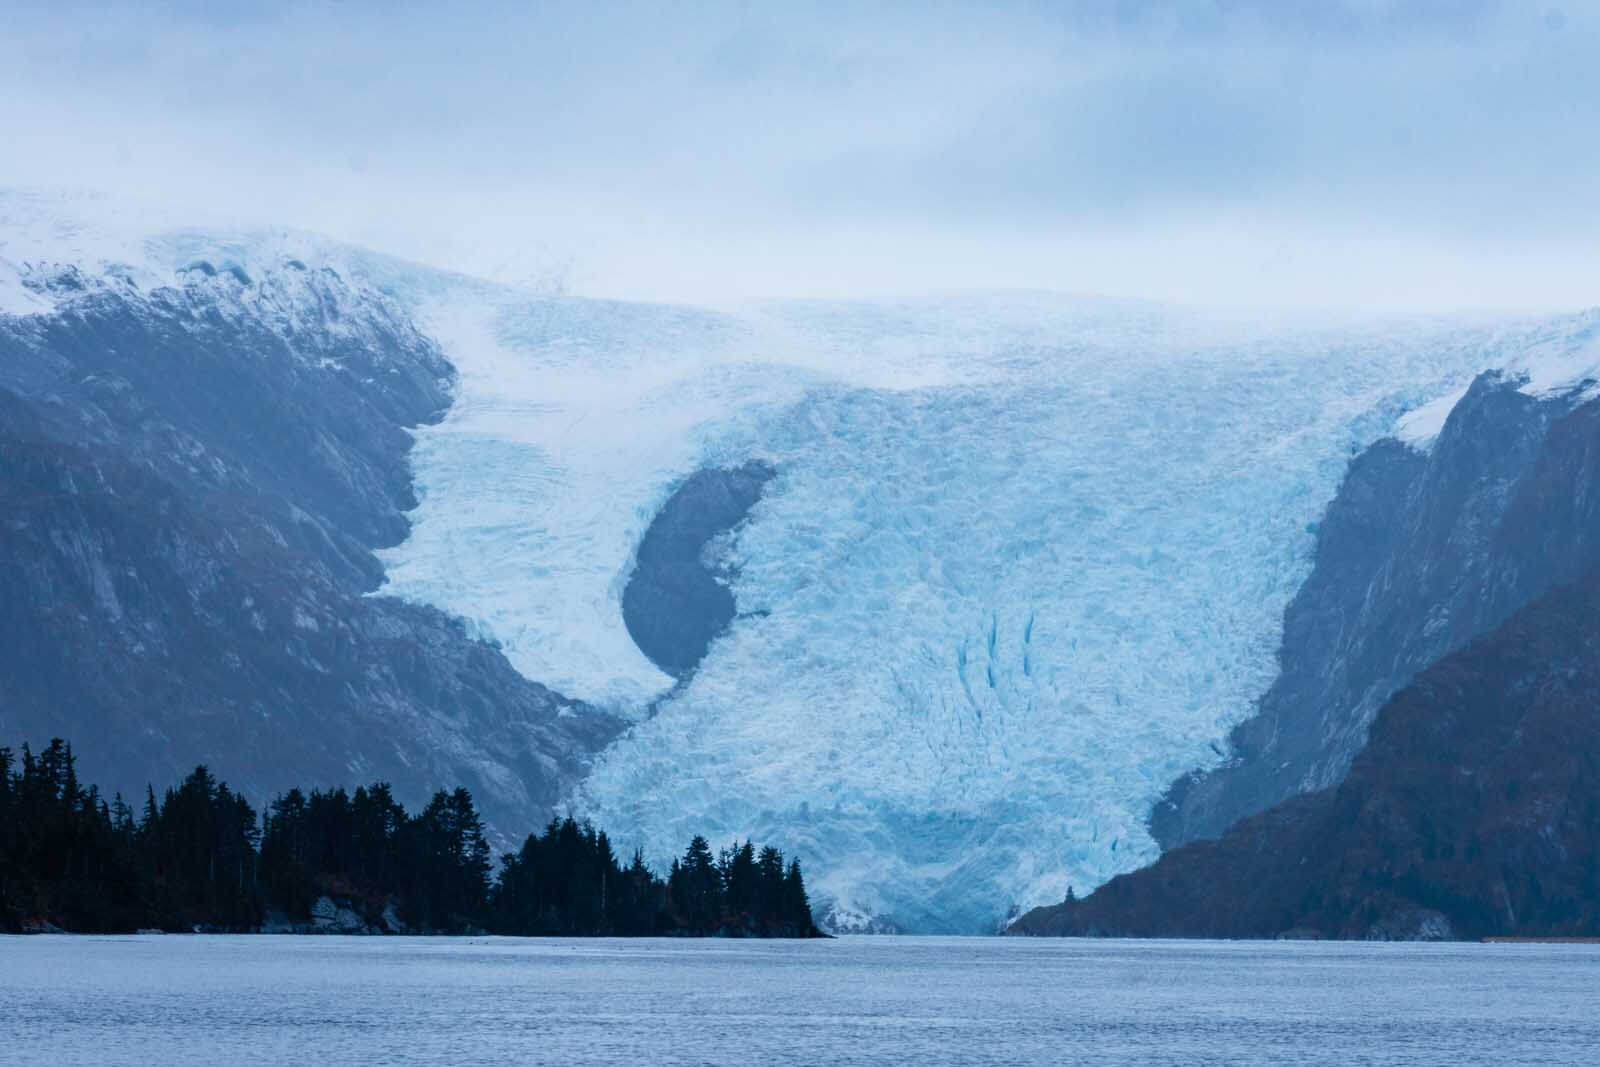 glacier view from Prince William Sound cruise in Alaska